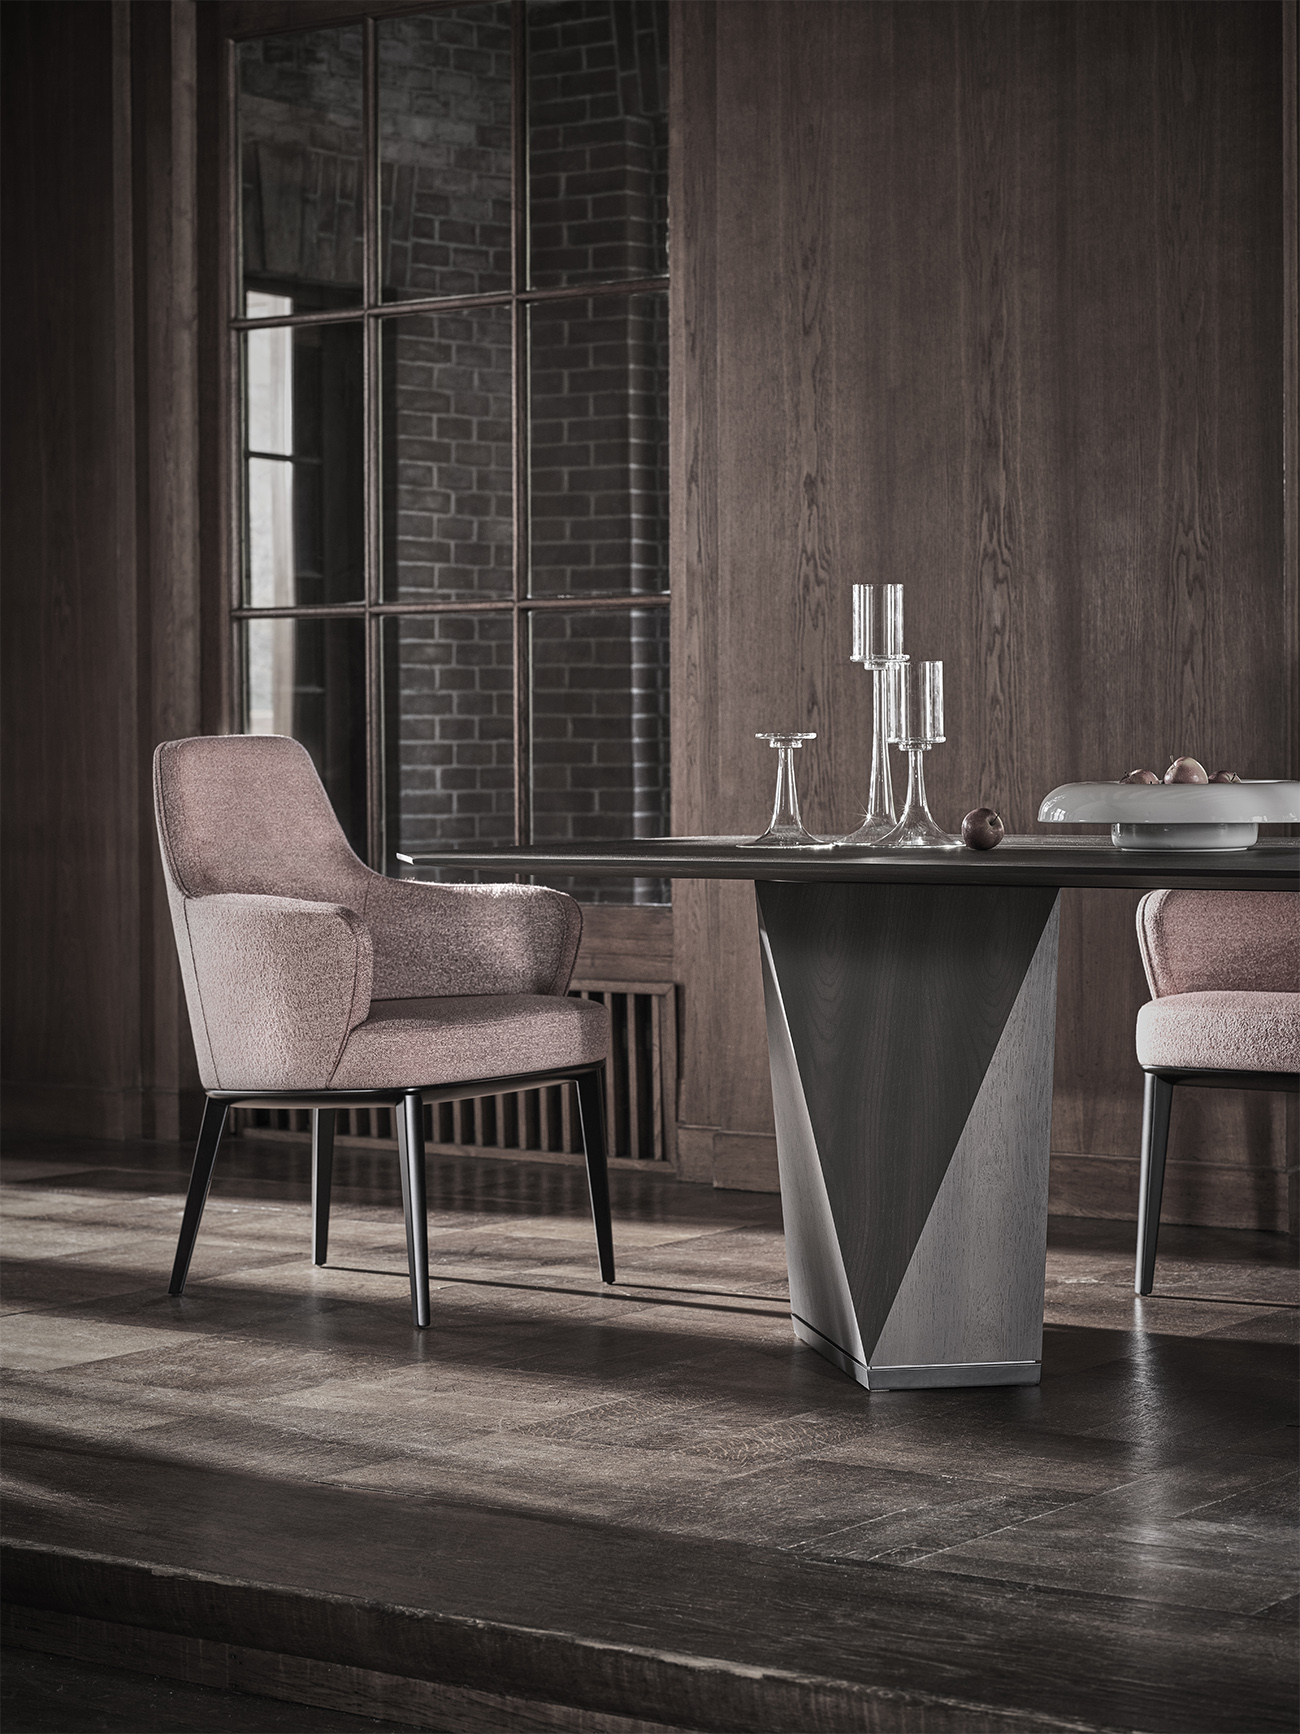 piano dining table rubelli casa navaarosio 6.jpg